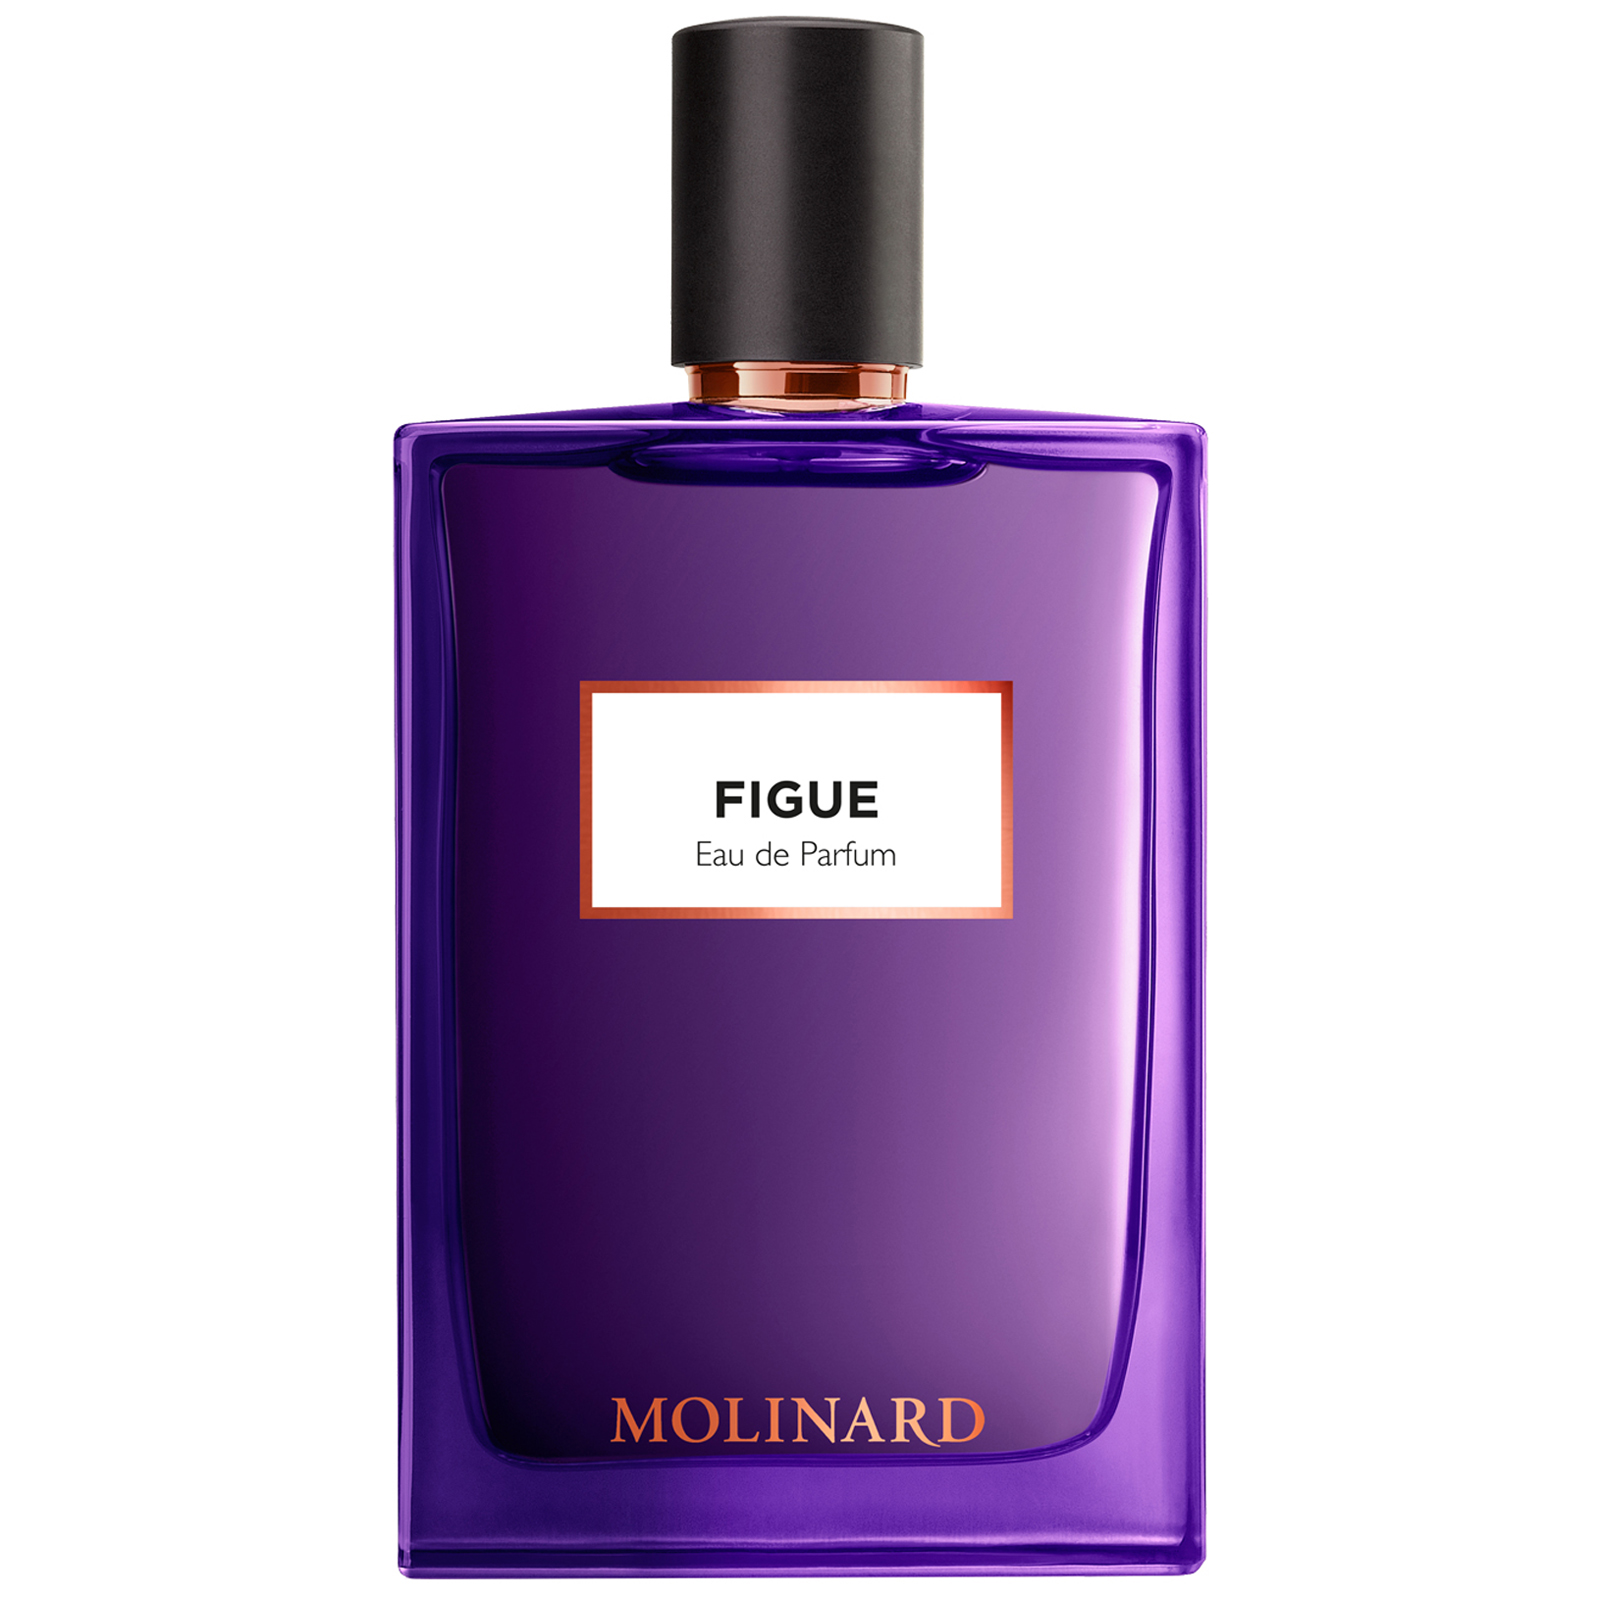 Figue profumo eau de parfum 75 ml